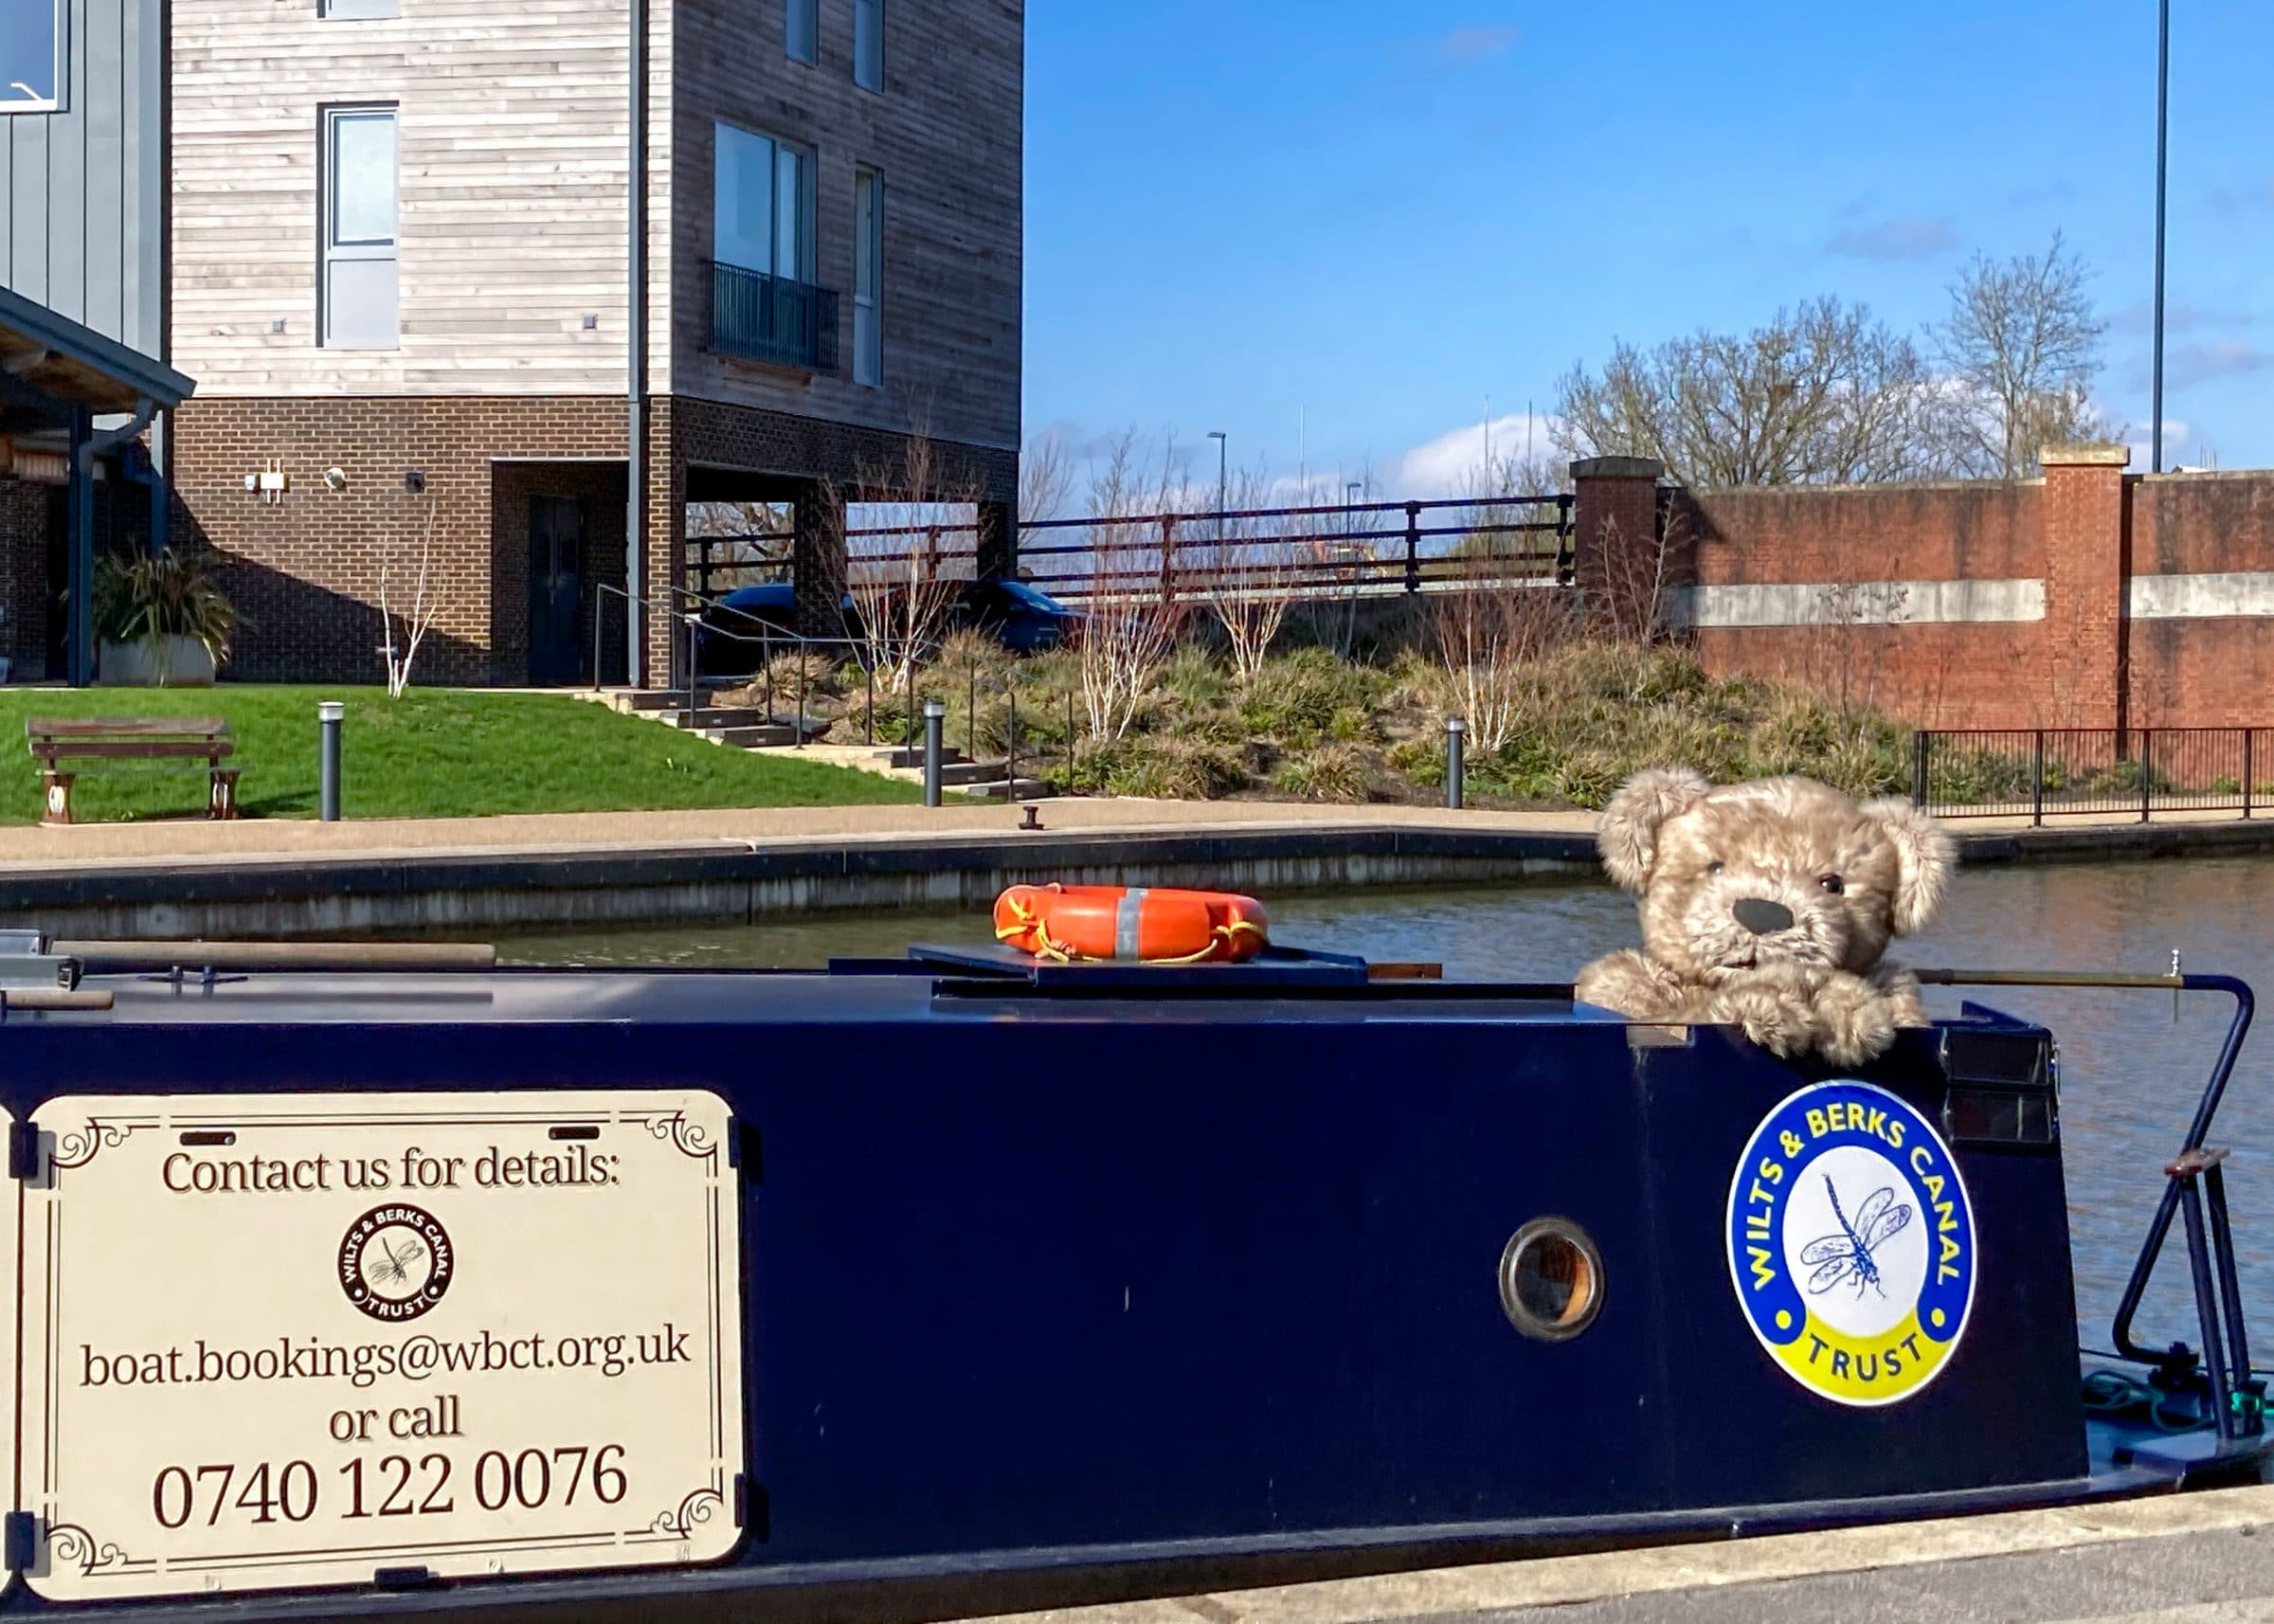 Bentley the Bear, a realistic teddy bear costume posing on the Dragonfly, a narrowboat.